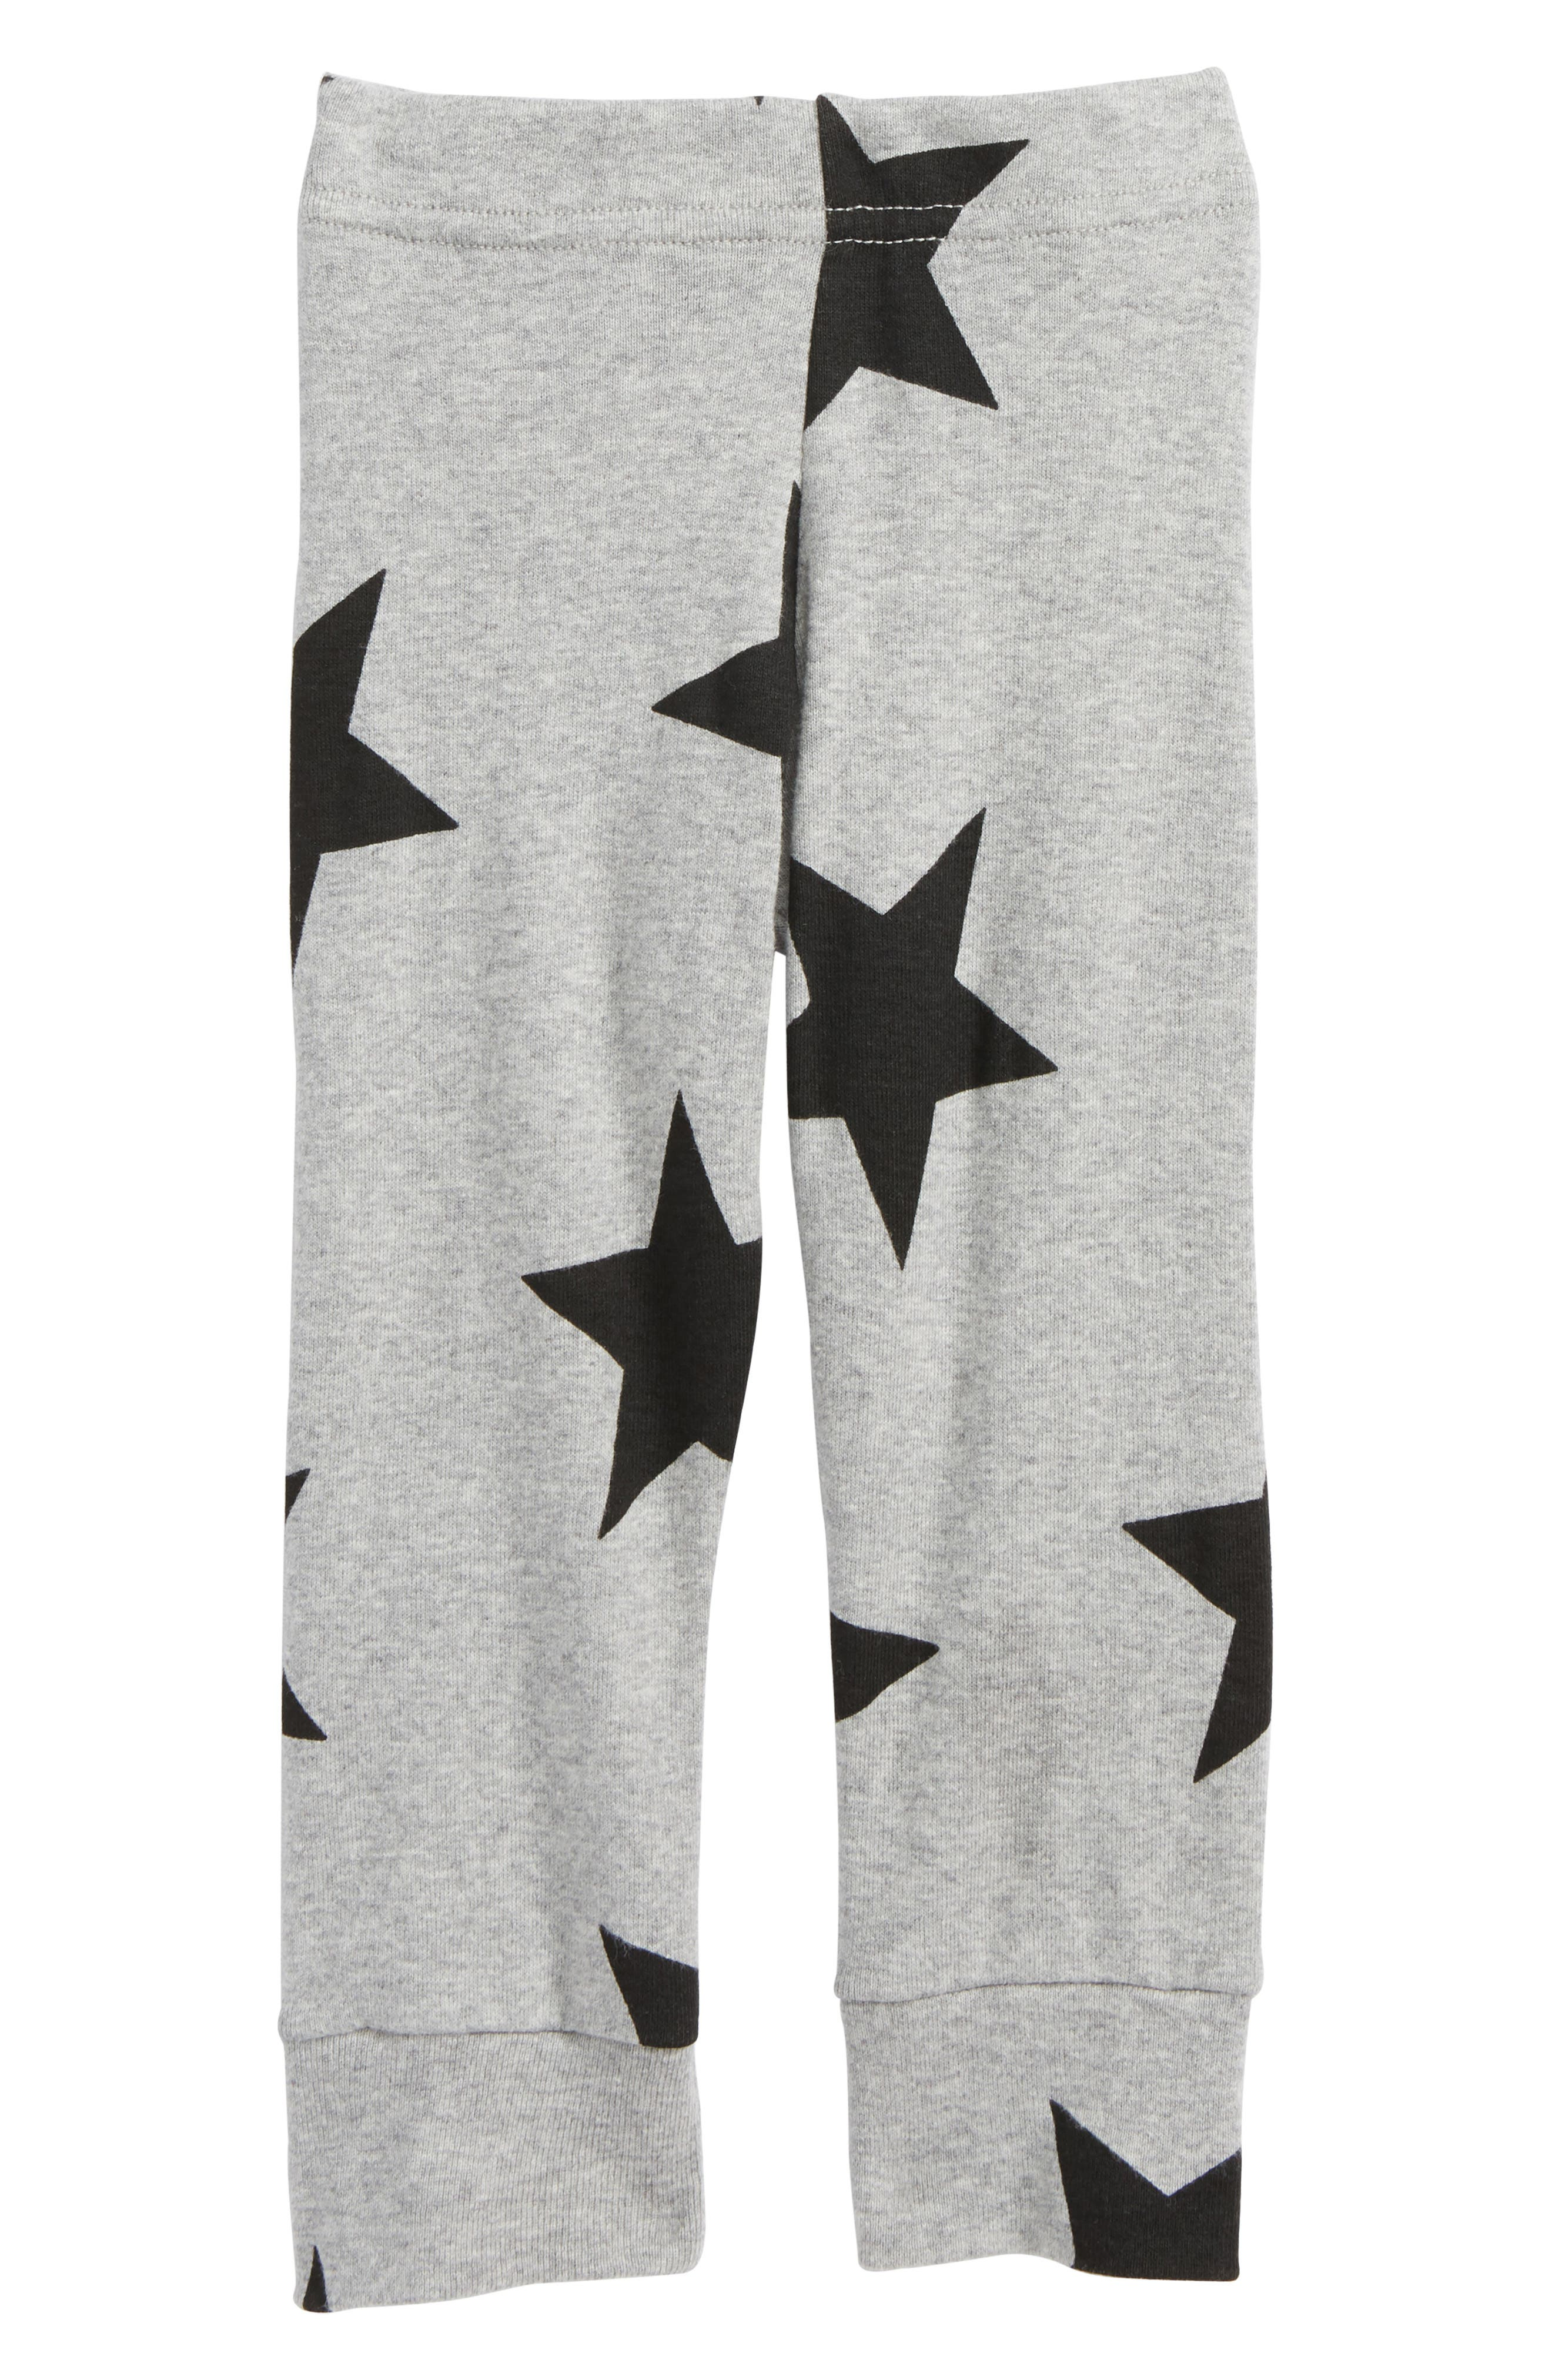 Star Print Pants,                             Main thumbnail 1, color,